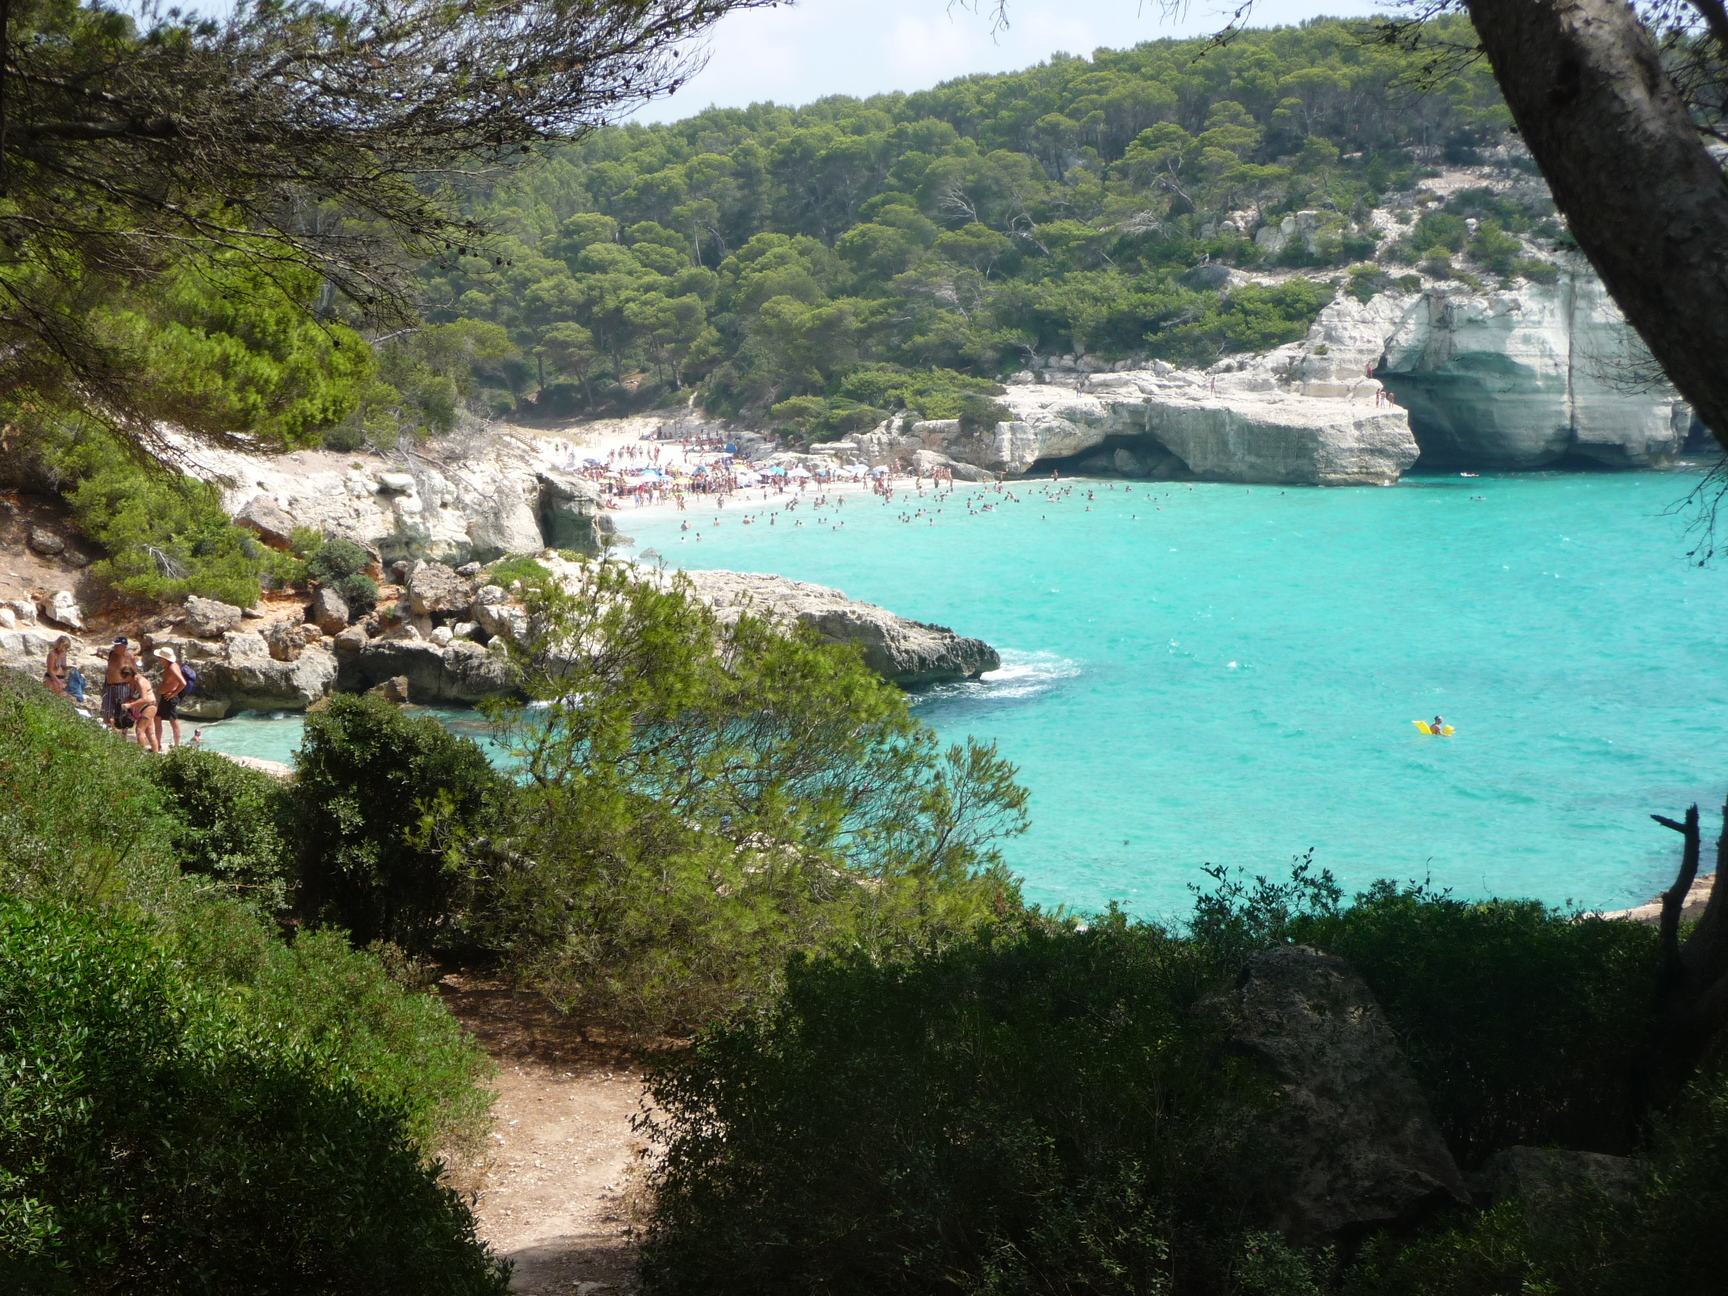 Cala Mitjana seen from the Camí de Cavalls. Stage Cala Galdana to Santo Tomás